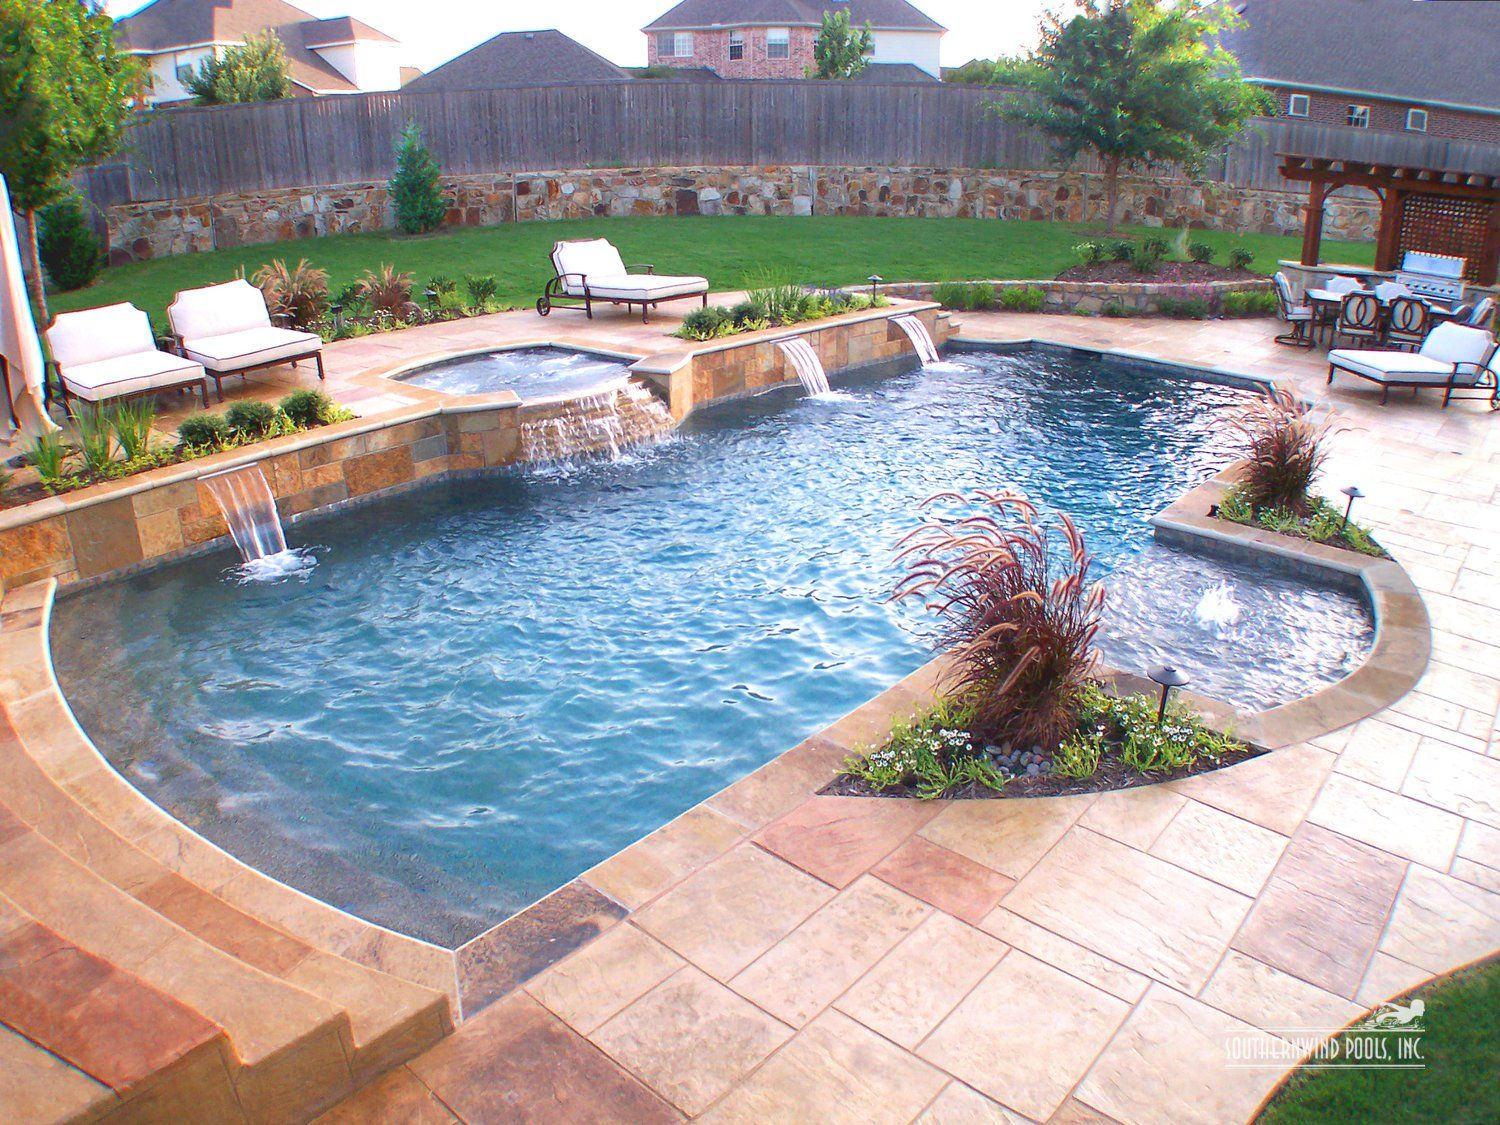 this is a nice space  the landscaping makes an already beautiful pool area shine even more